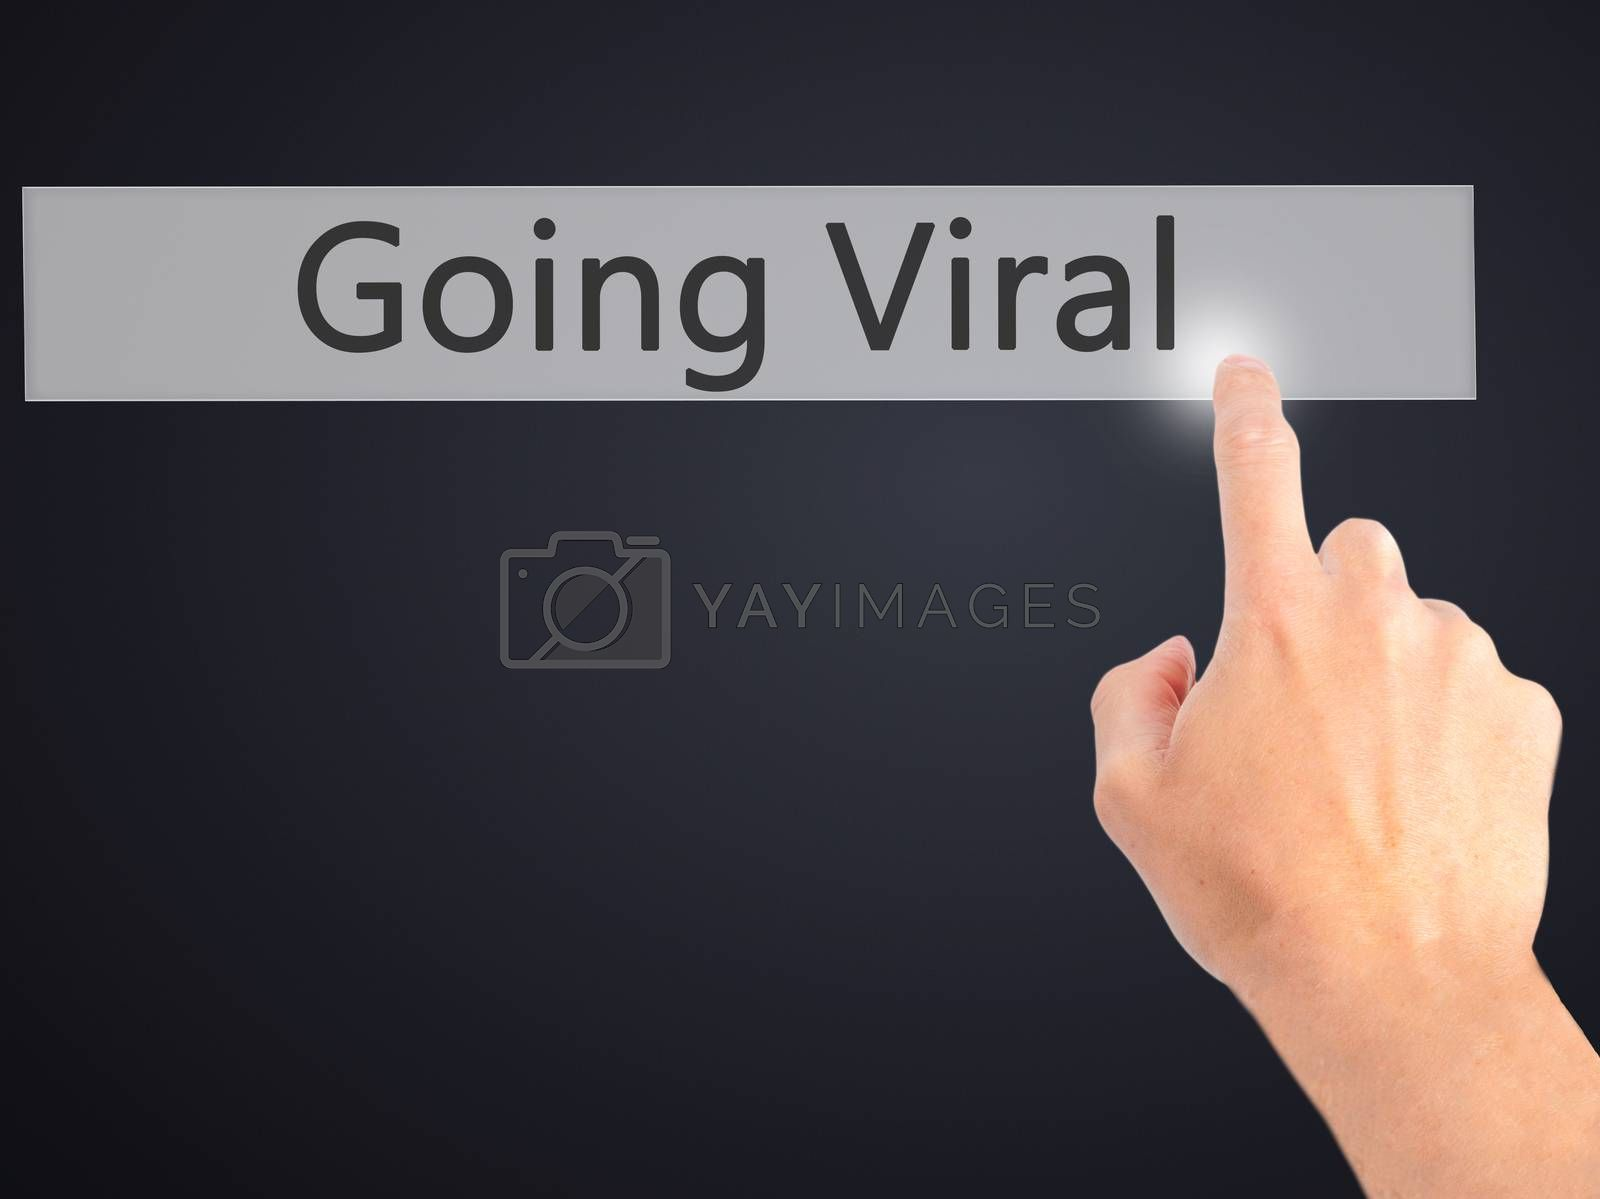 Going Viral - Hand pressing a button on blurred background conce by netsay.net